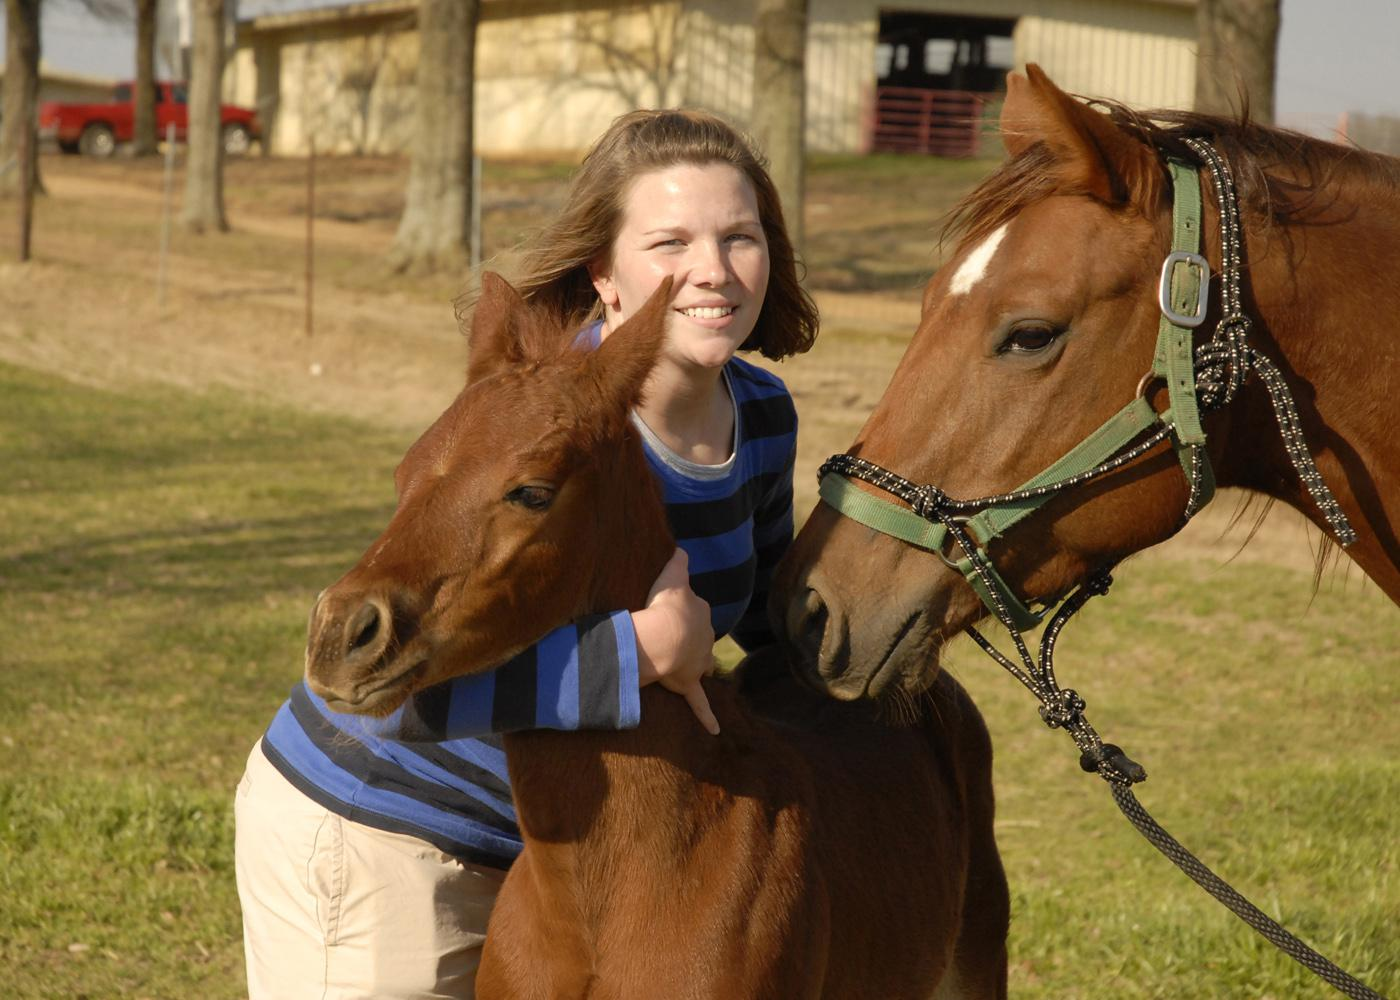 Dr. Joy Mordecai, an equine reproduction resident at Mississippi State University's College of Veterinary Medicine, holds Freddie Mac, one of the twin foals from a champion cutting horse, while its surrogate mother keeps a close eye on her colt. (Photo by Linda Breazeale)